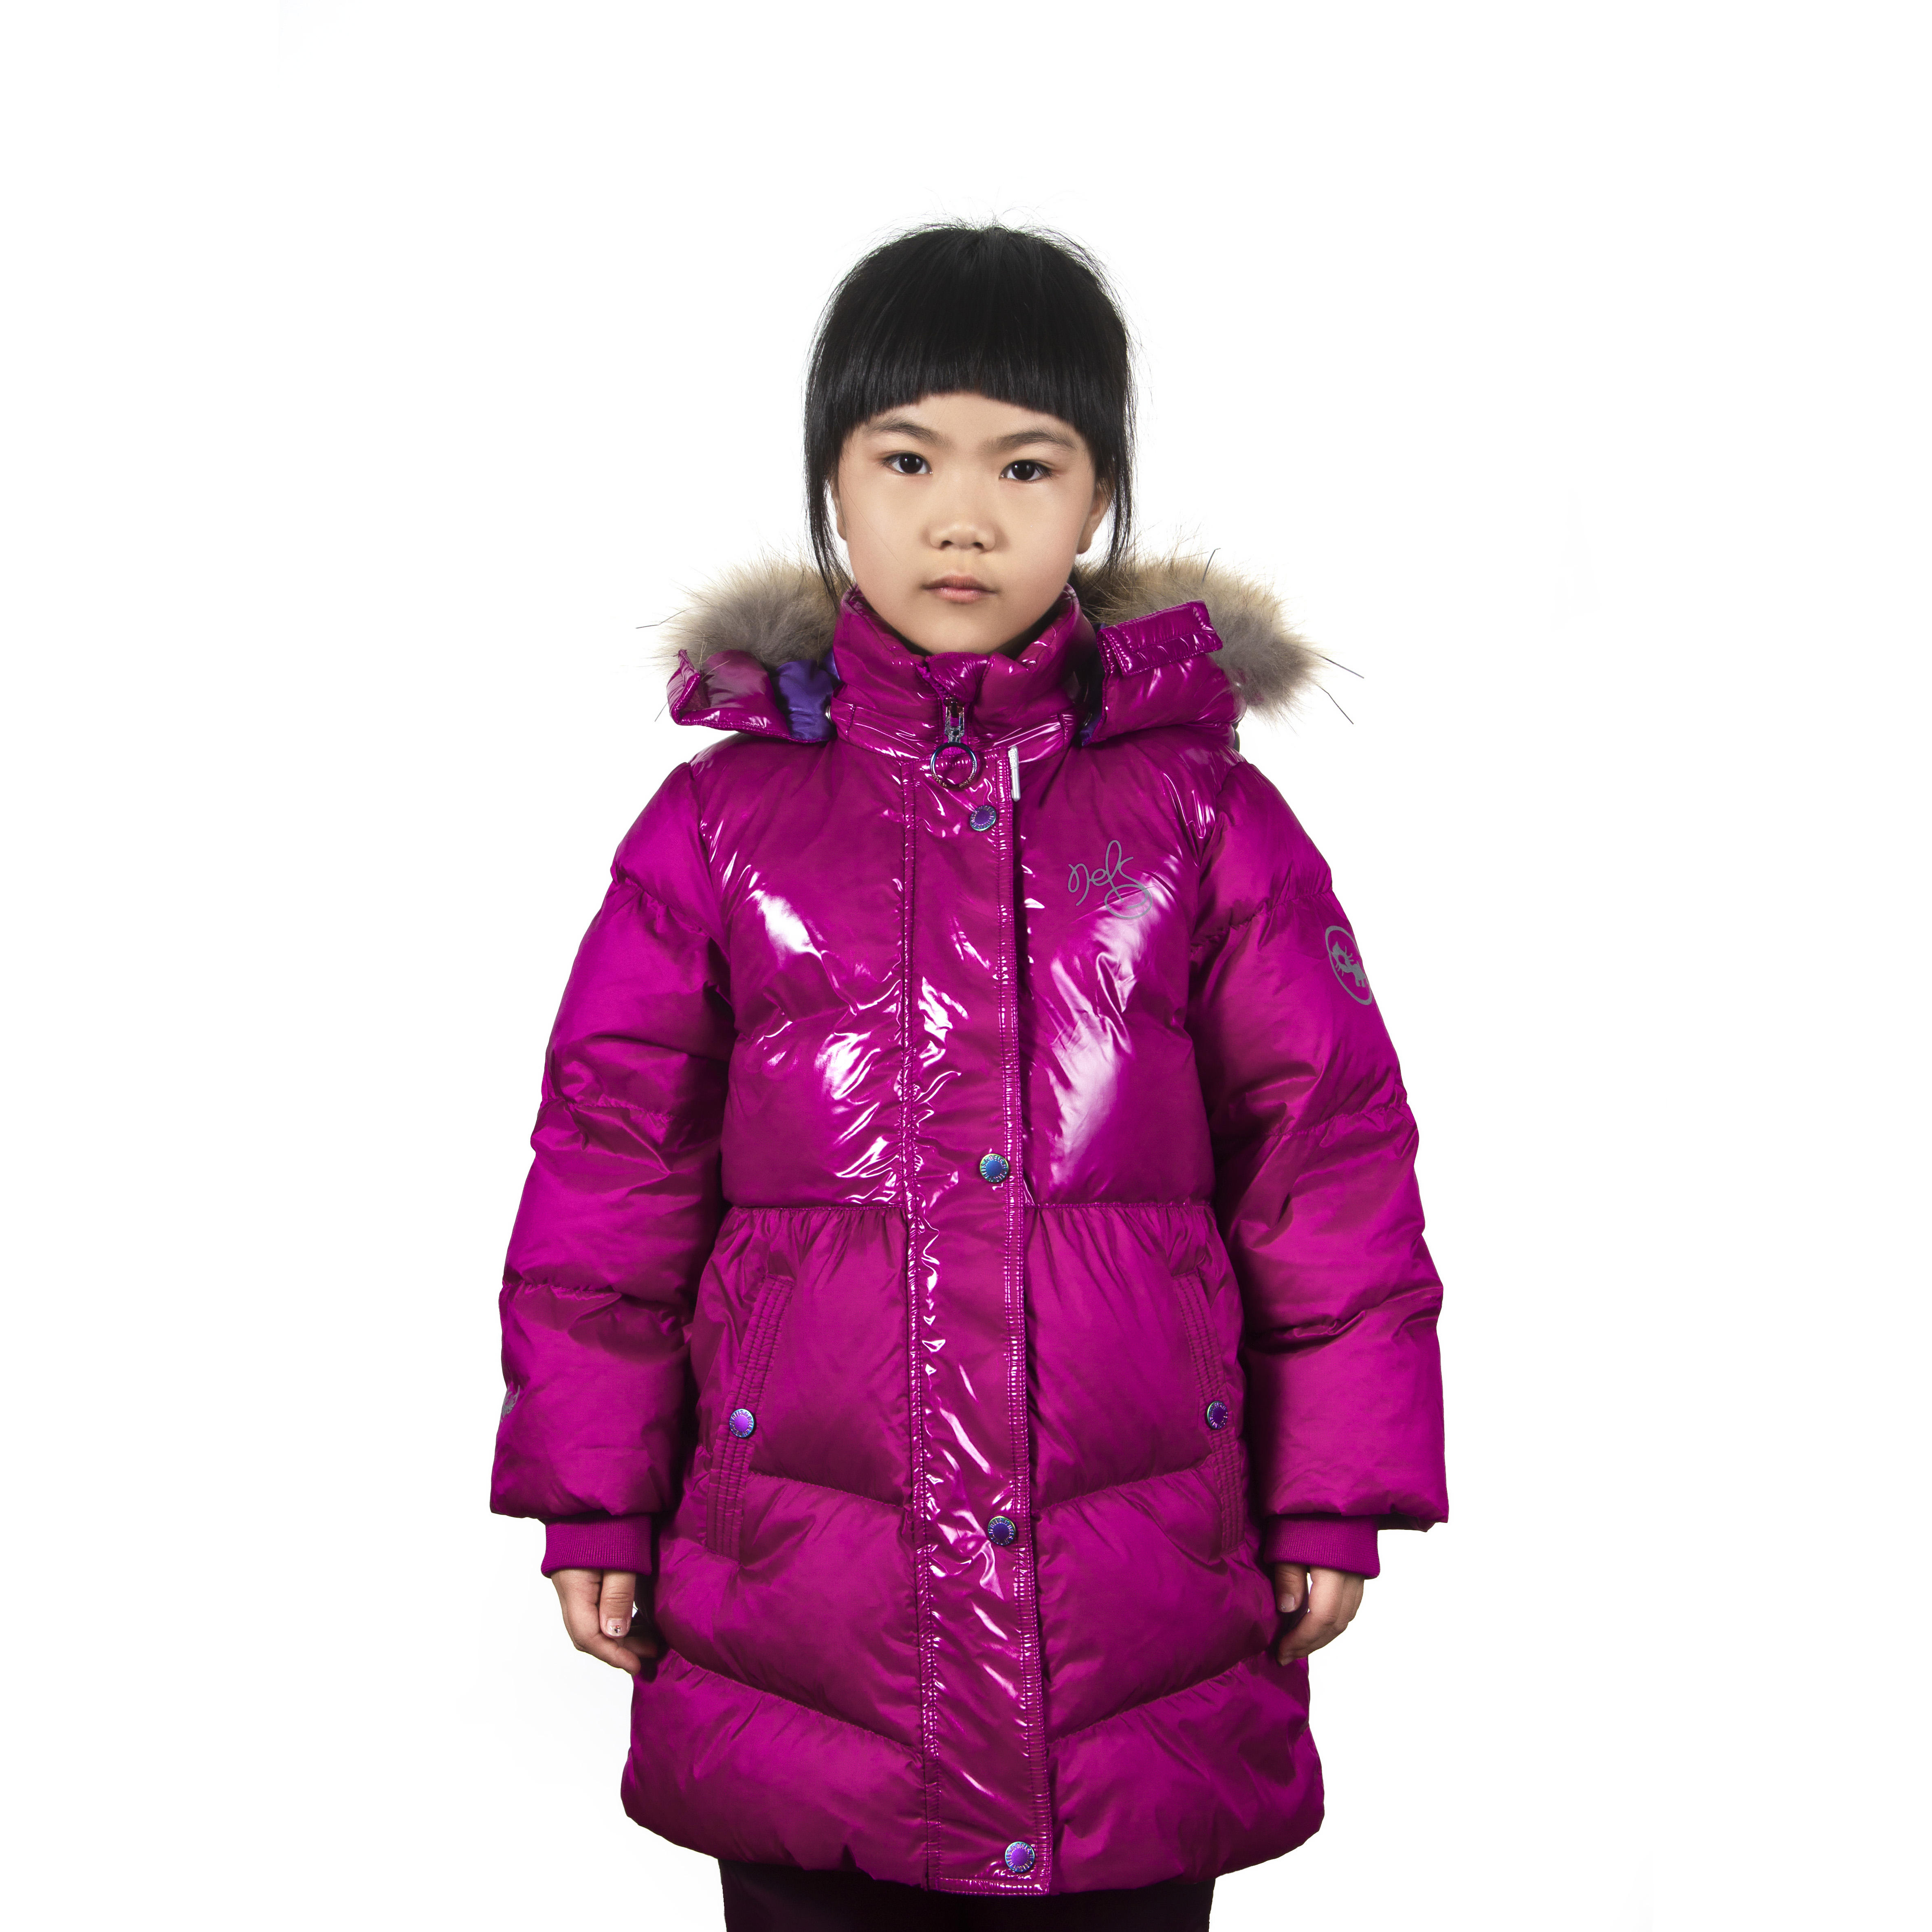 Jianfeng Stylish Winter Outdoor Customized Original Fur Collar Long Style Kids Down Hoodie Jacket With Zipper